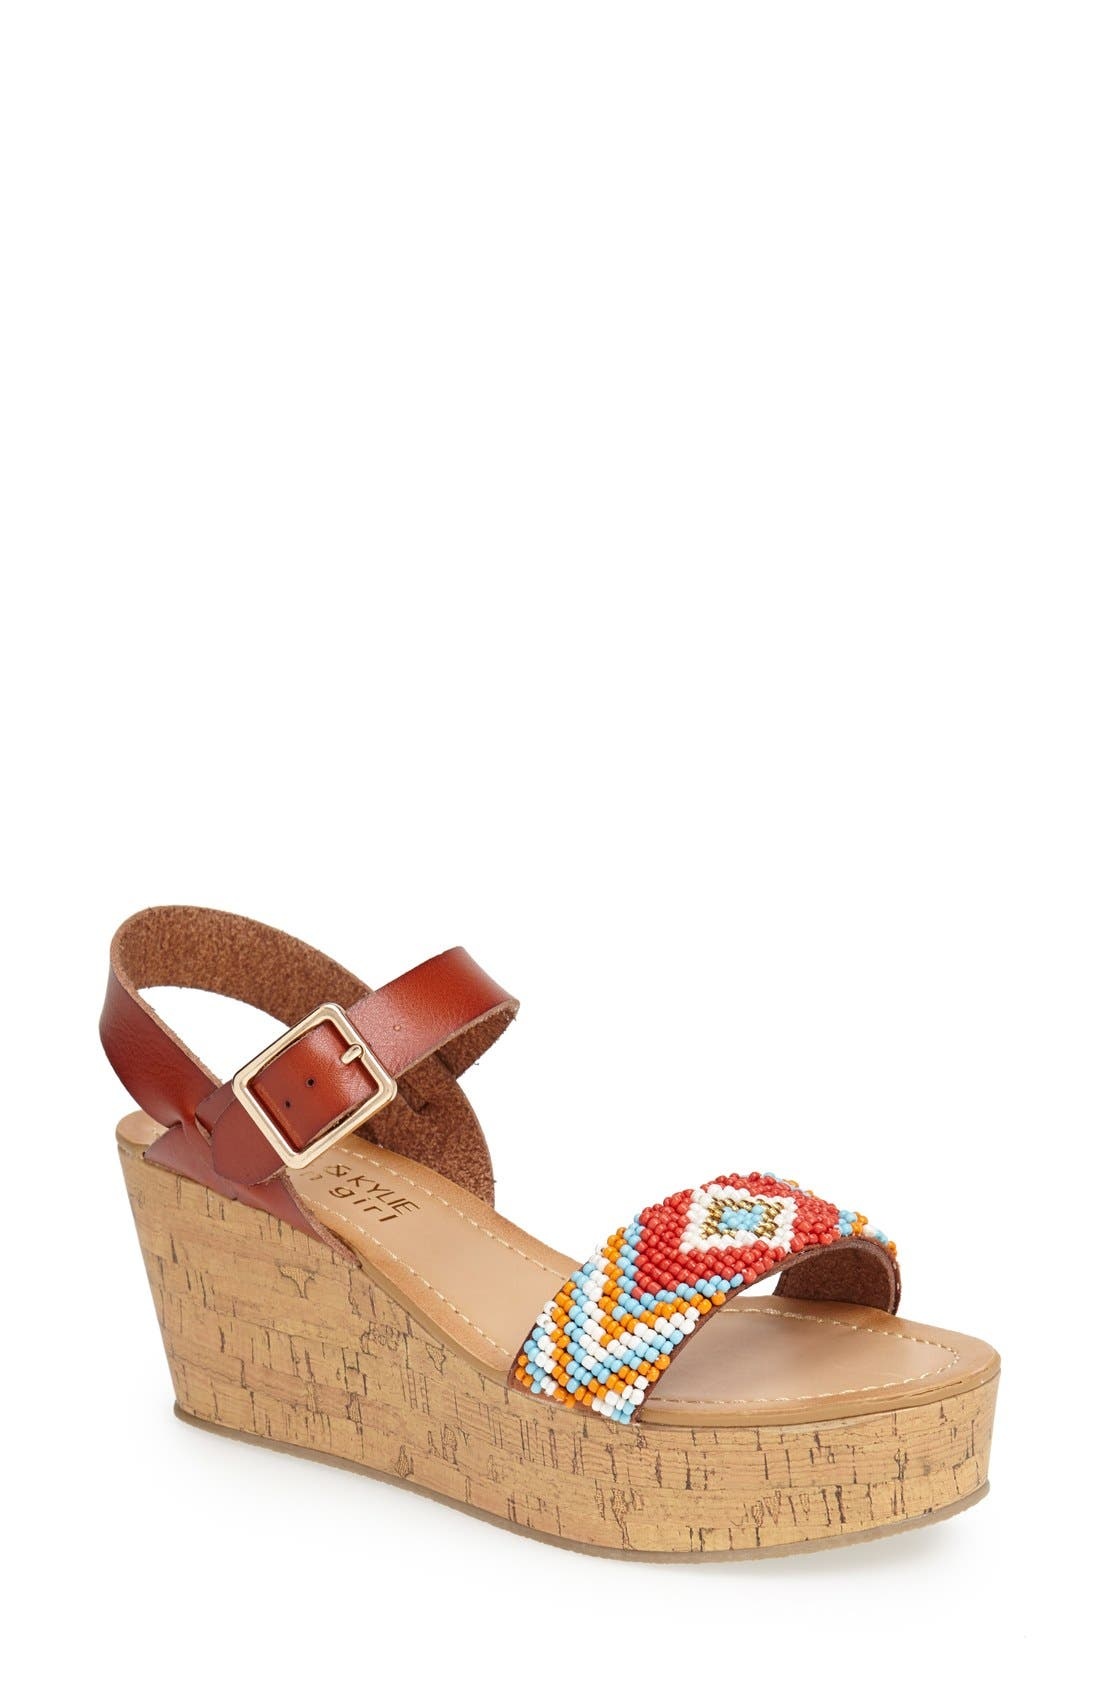 Alternate Image 1 Selected - KENDALL + KYLIE Madden Girl 'Avaalon' Wedge Sandal (Women)